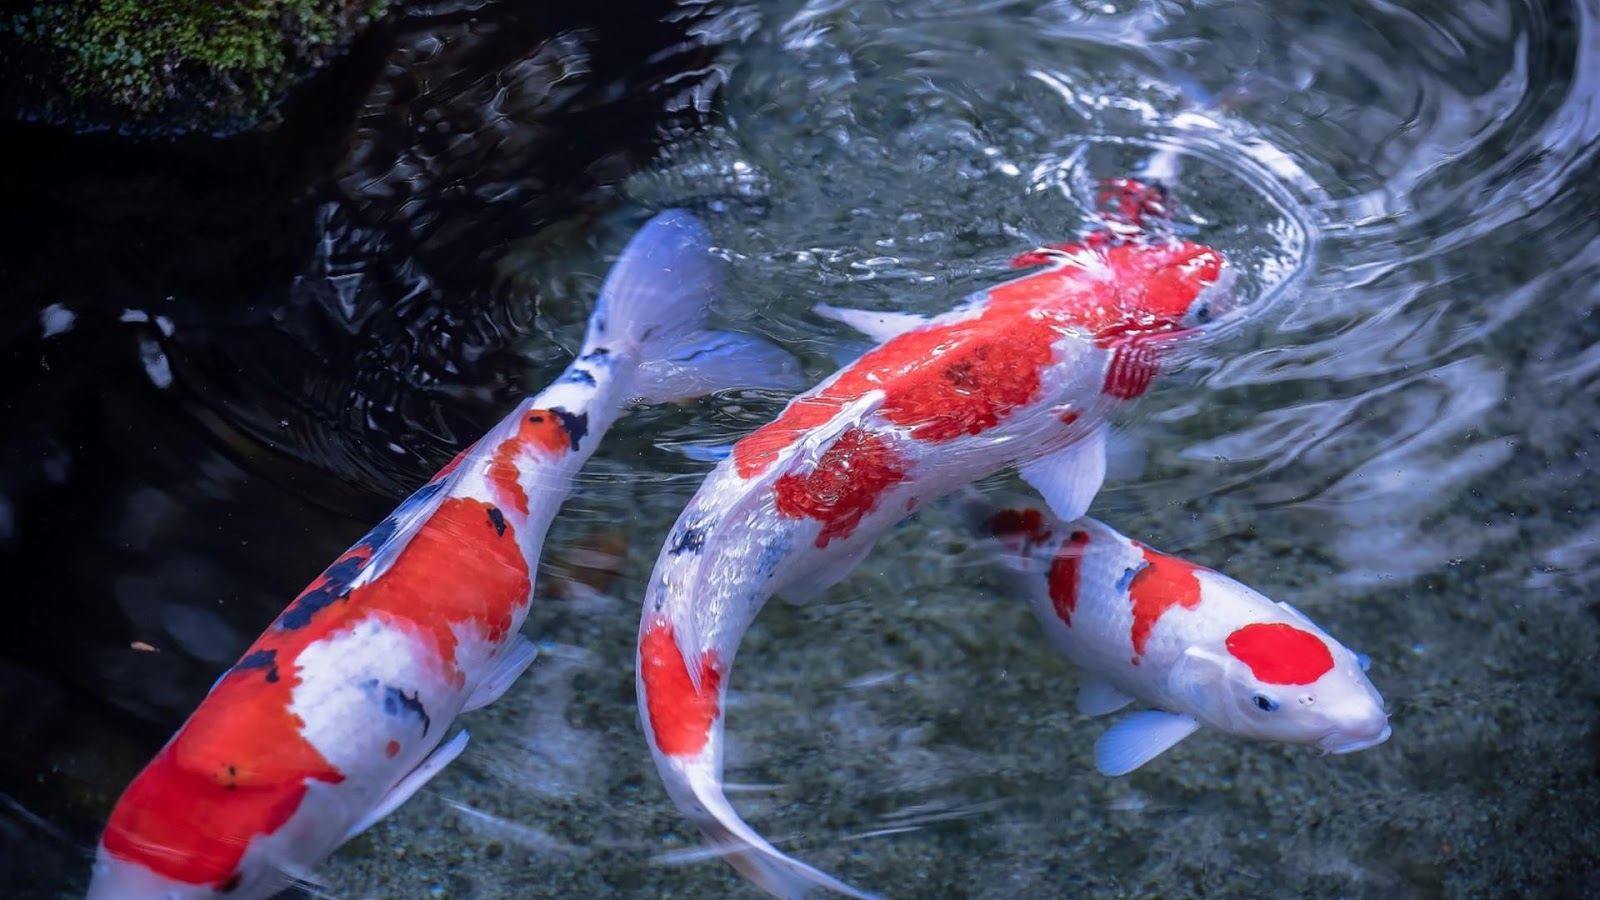 Legends of the koi fish the costa rican times for Blue and orange koi fish